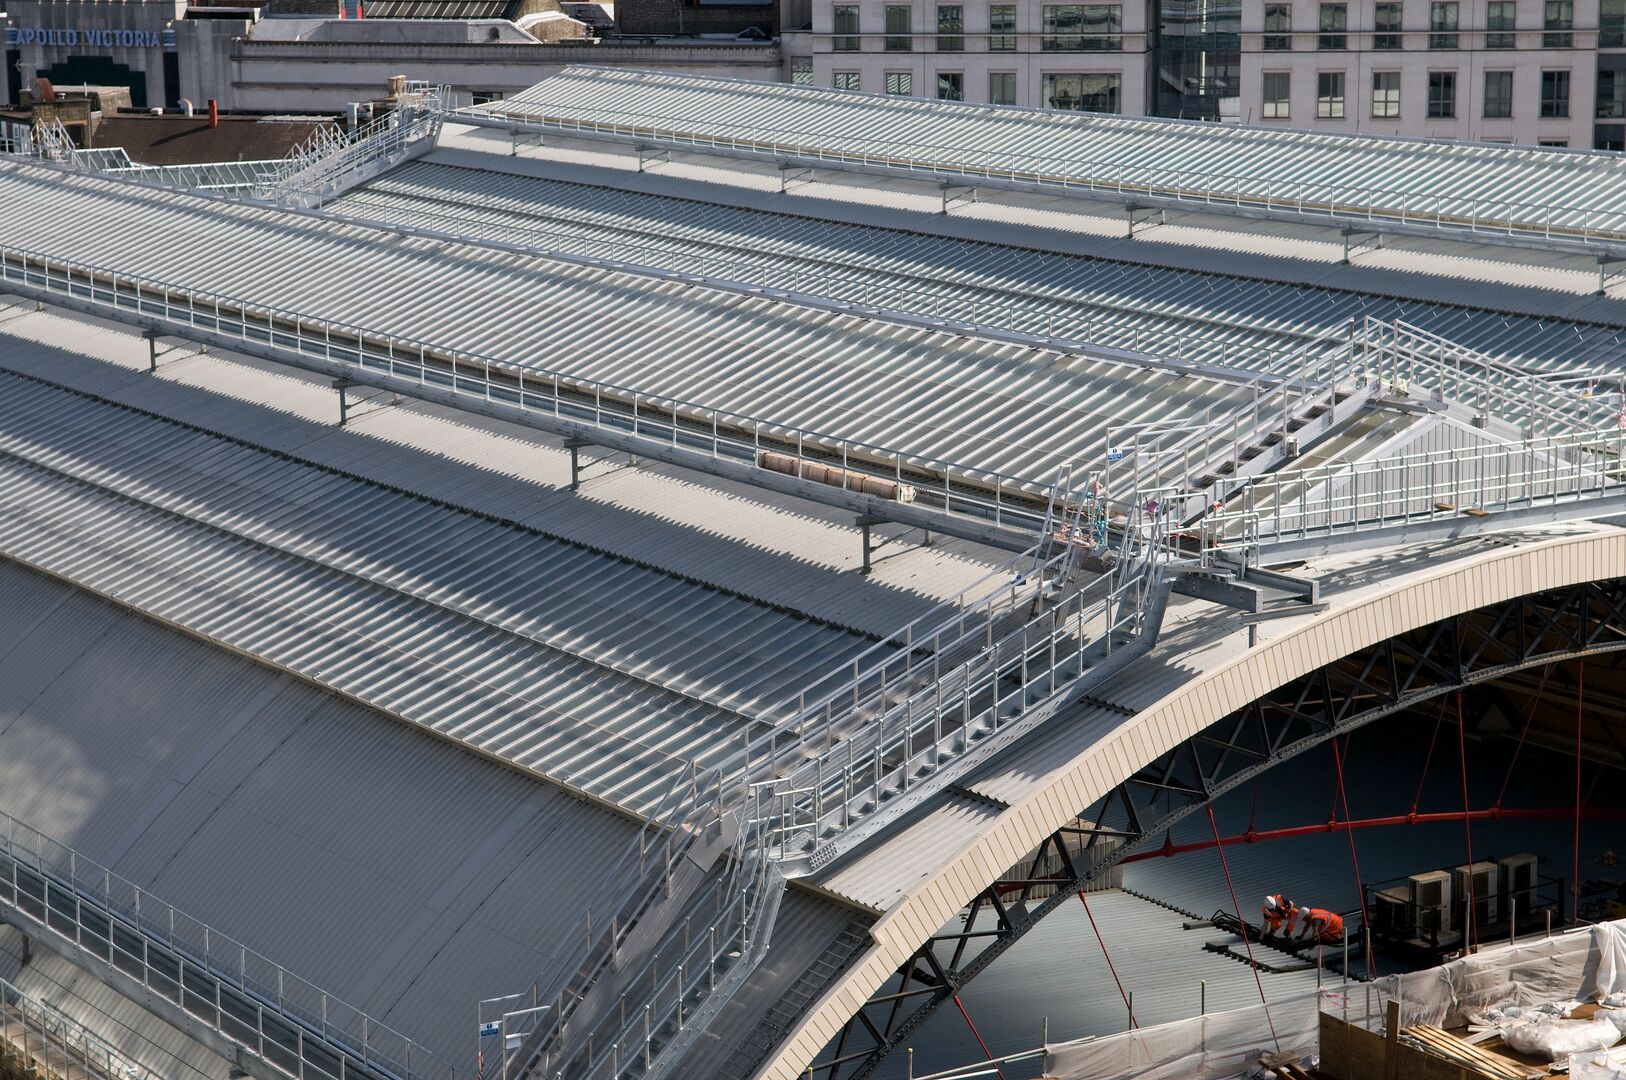 London Victoria Station using Tata Steel Trisobuild curved roof cladding